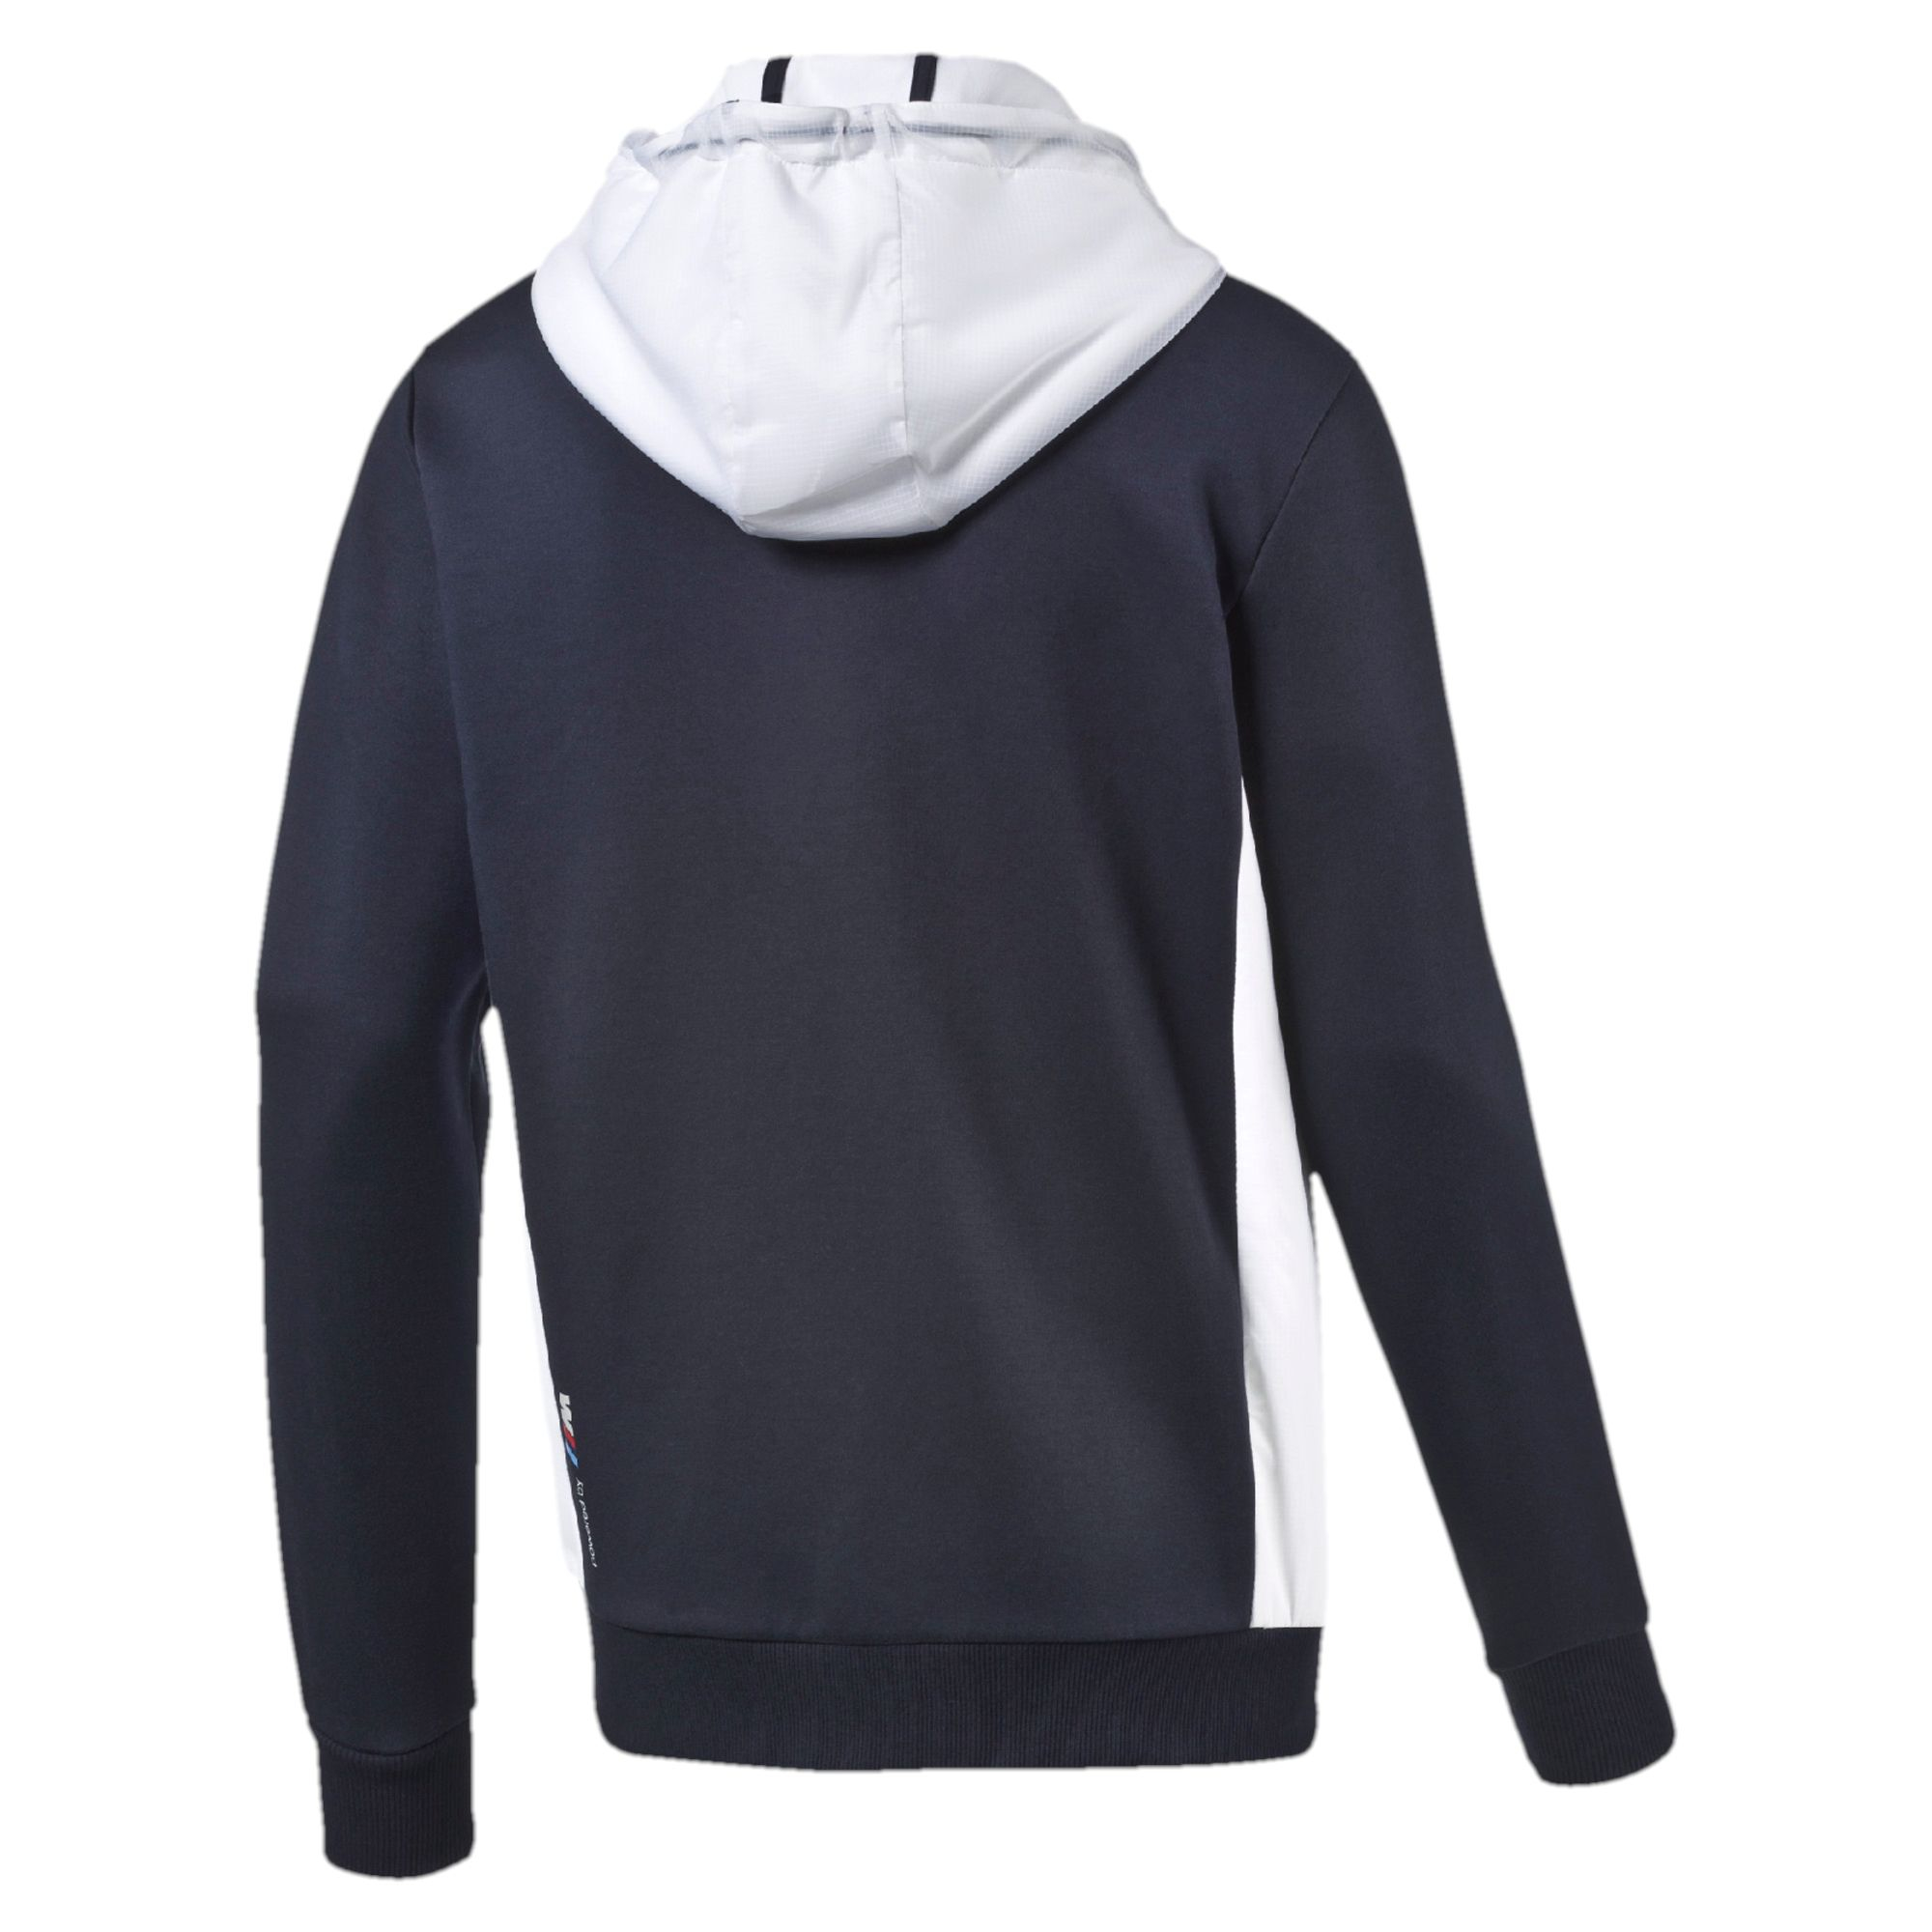 21764a97a508 Lyst - PUMA Bmw Zip-up Hoodie in Blue for Men